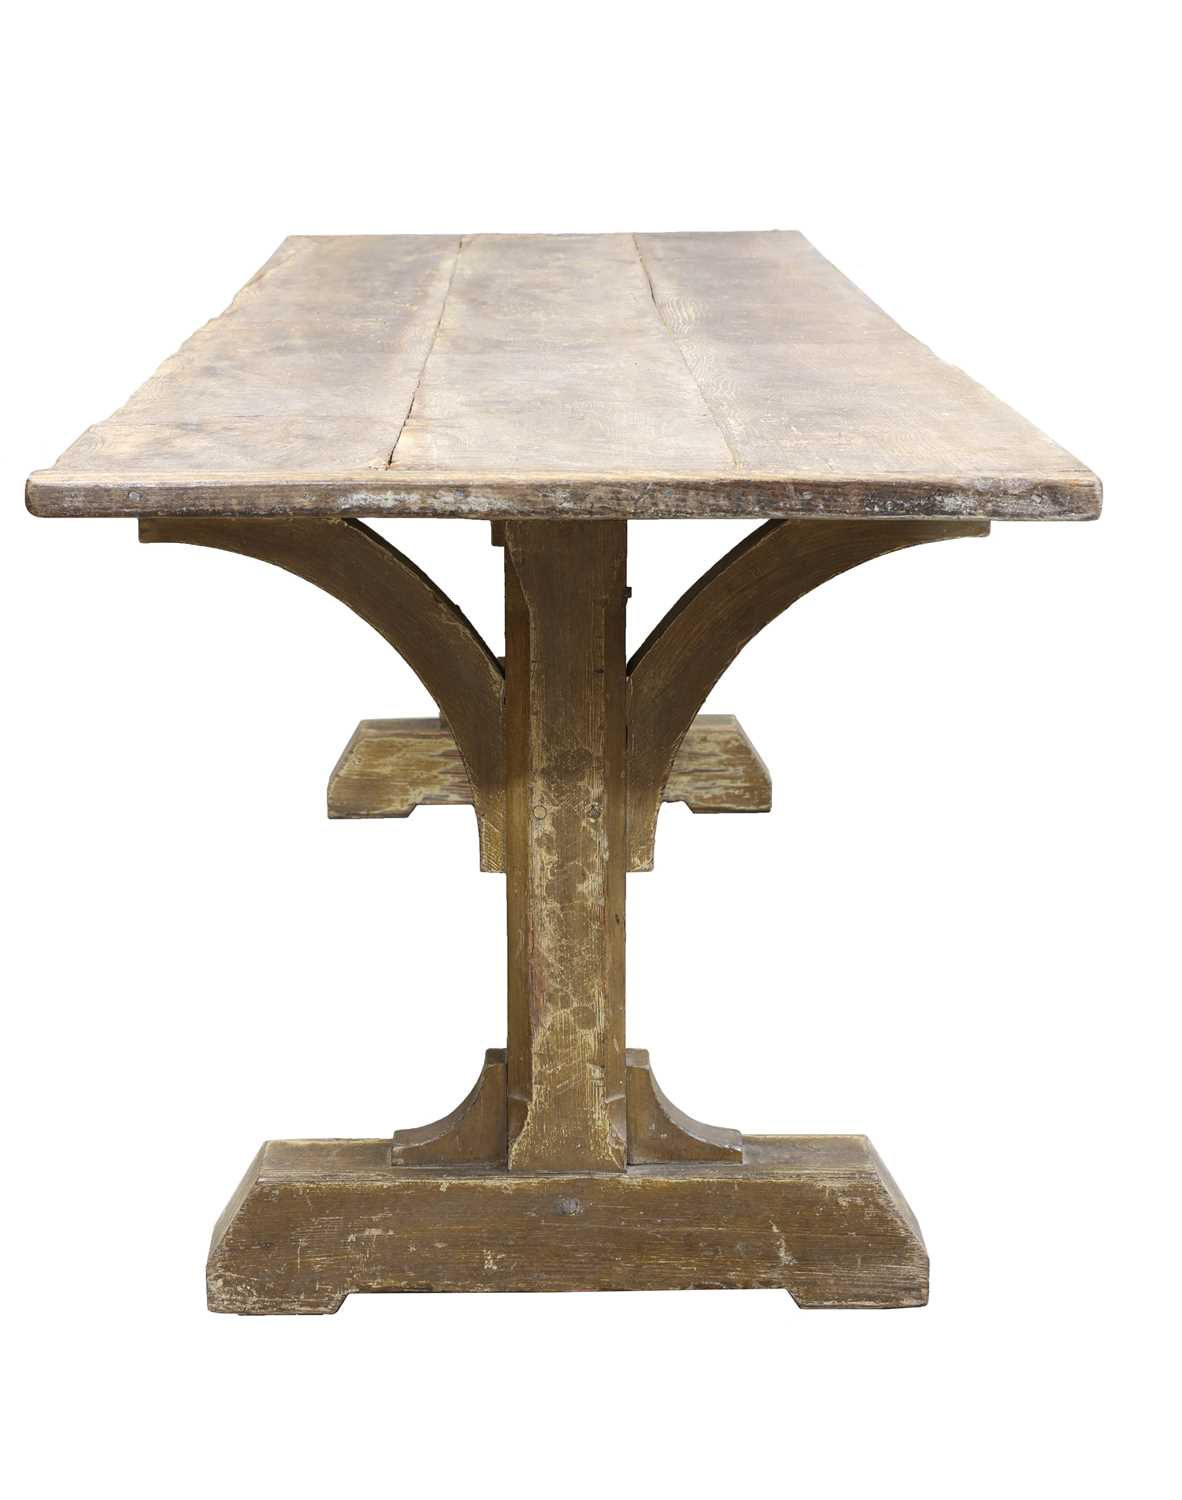 An elm and pine refectory table, - Image 3 of 3